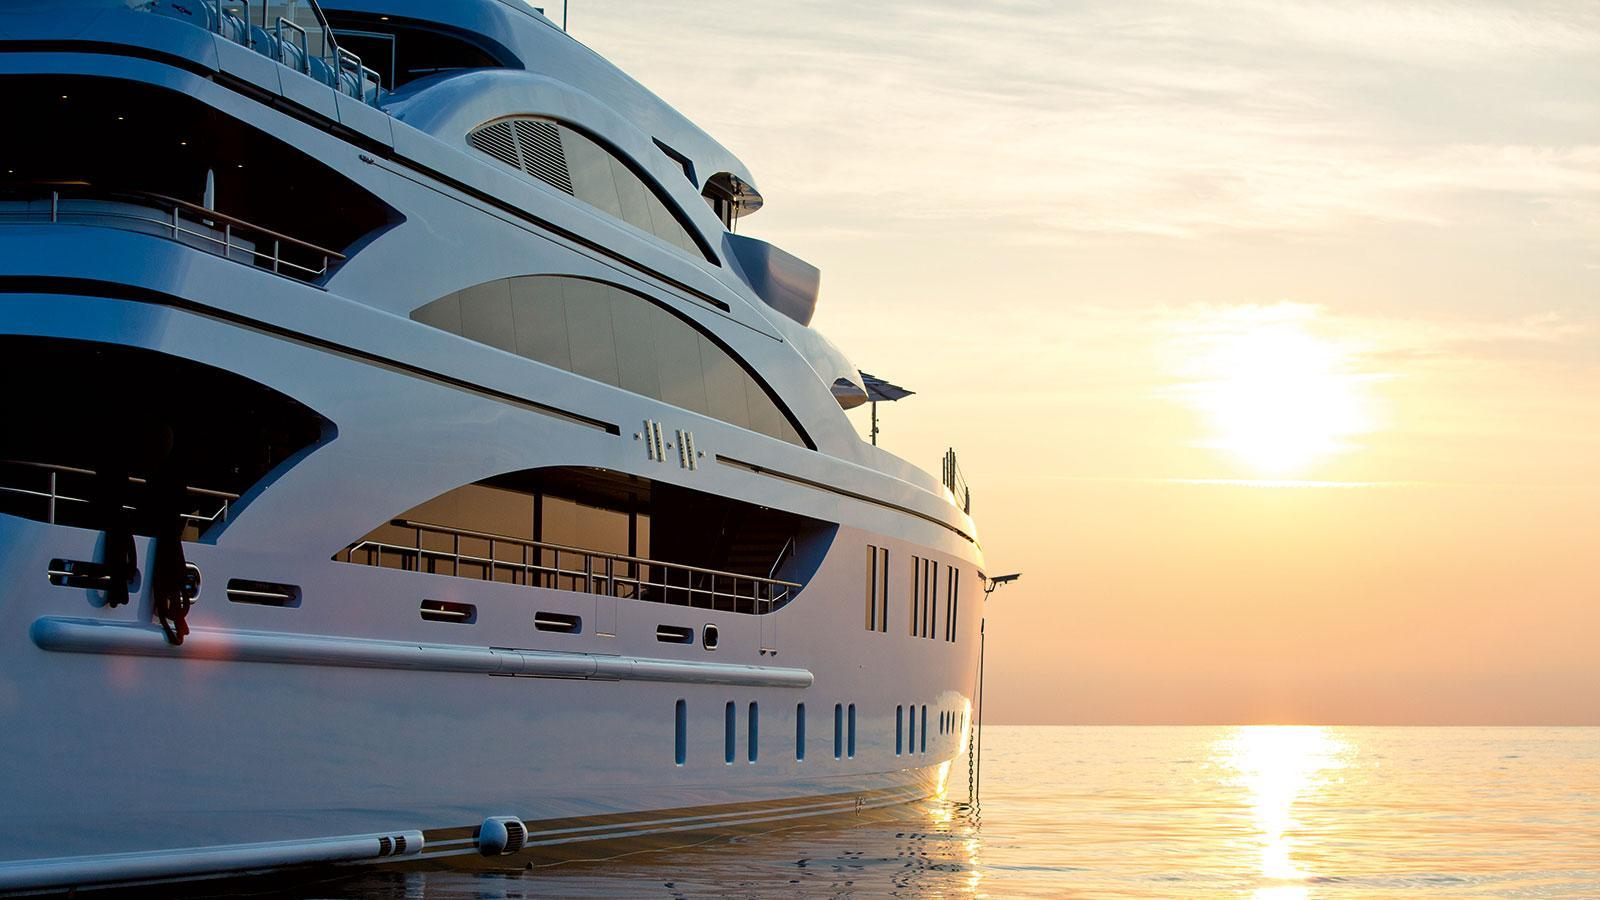 1111-motor-yacht-benetti-2015-63m-side-sunset